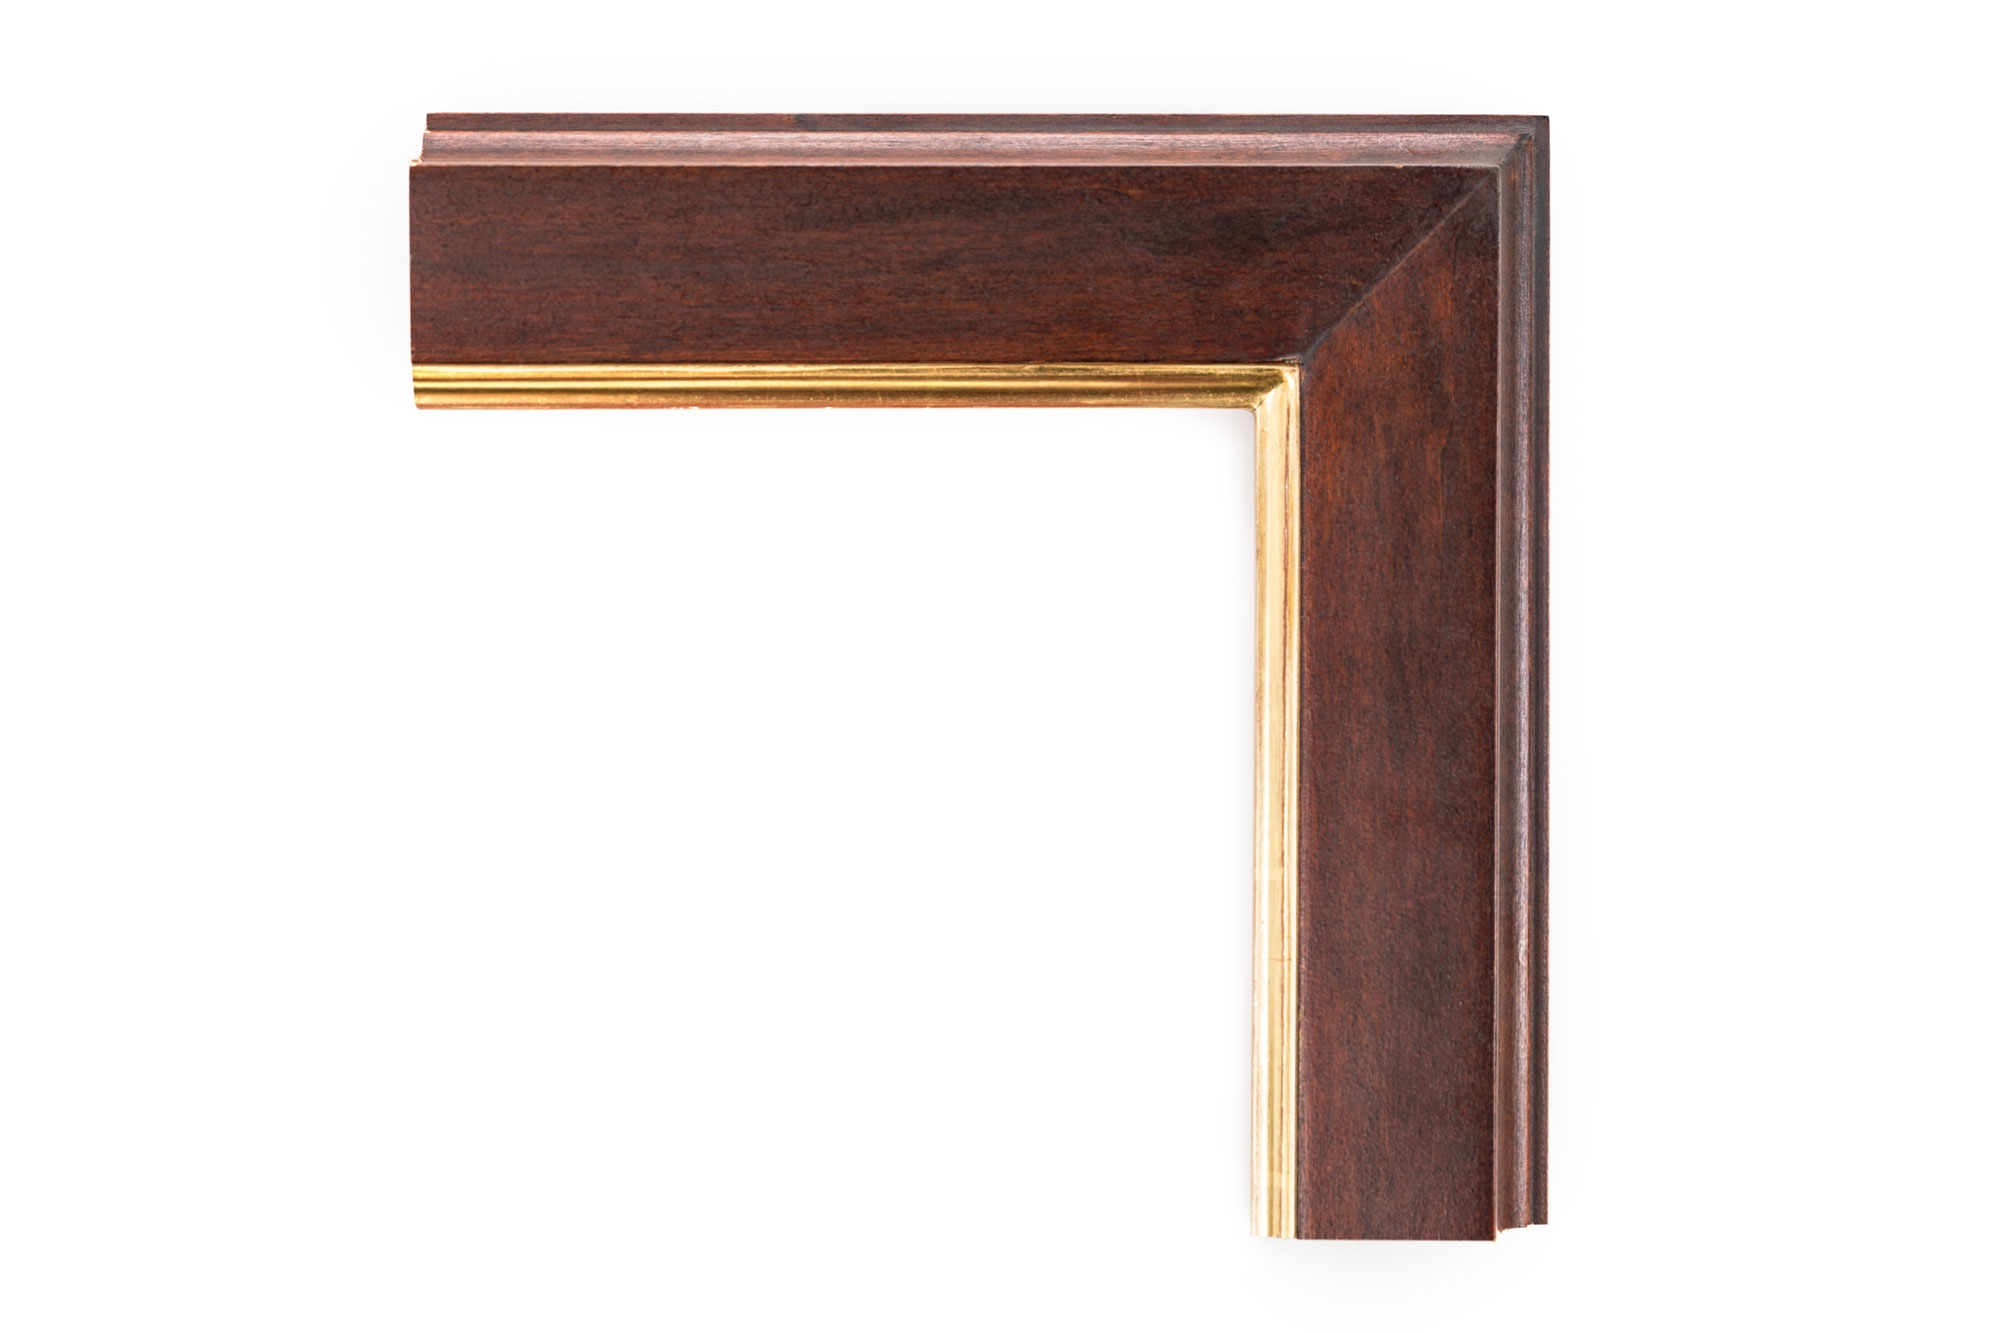 "Walnut Wedge with Hollow Sides 3 1/4"" Walnut Stain, 22kt Gold over Red Lip; the outside wall of the frame is hollowed out to create more depth and ambiance."